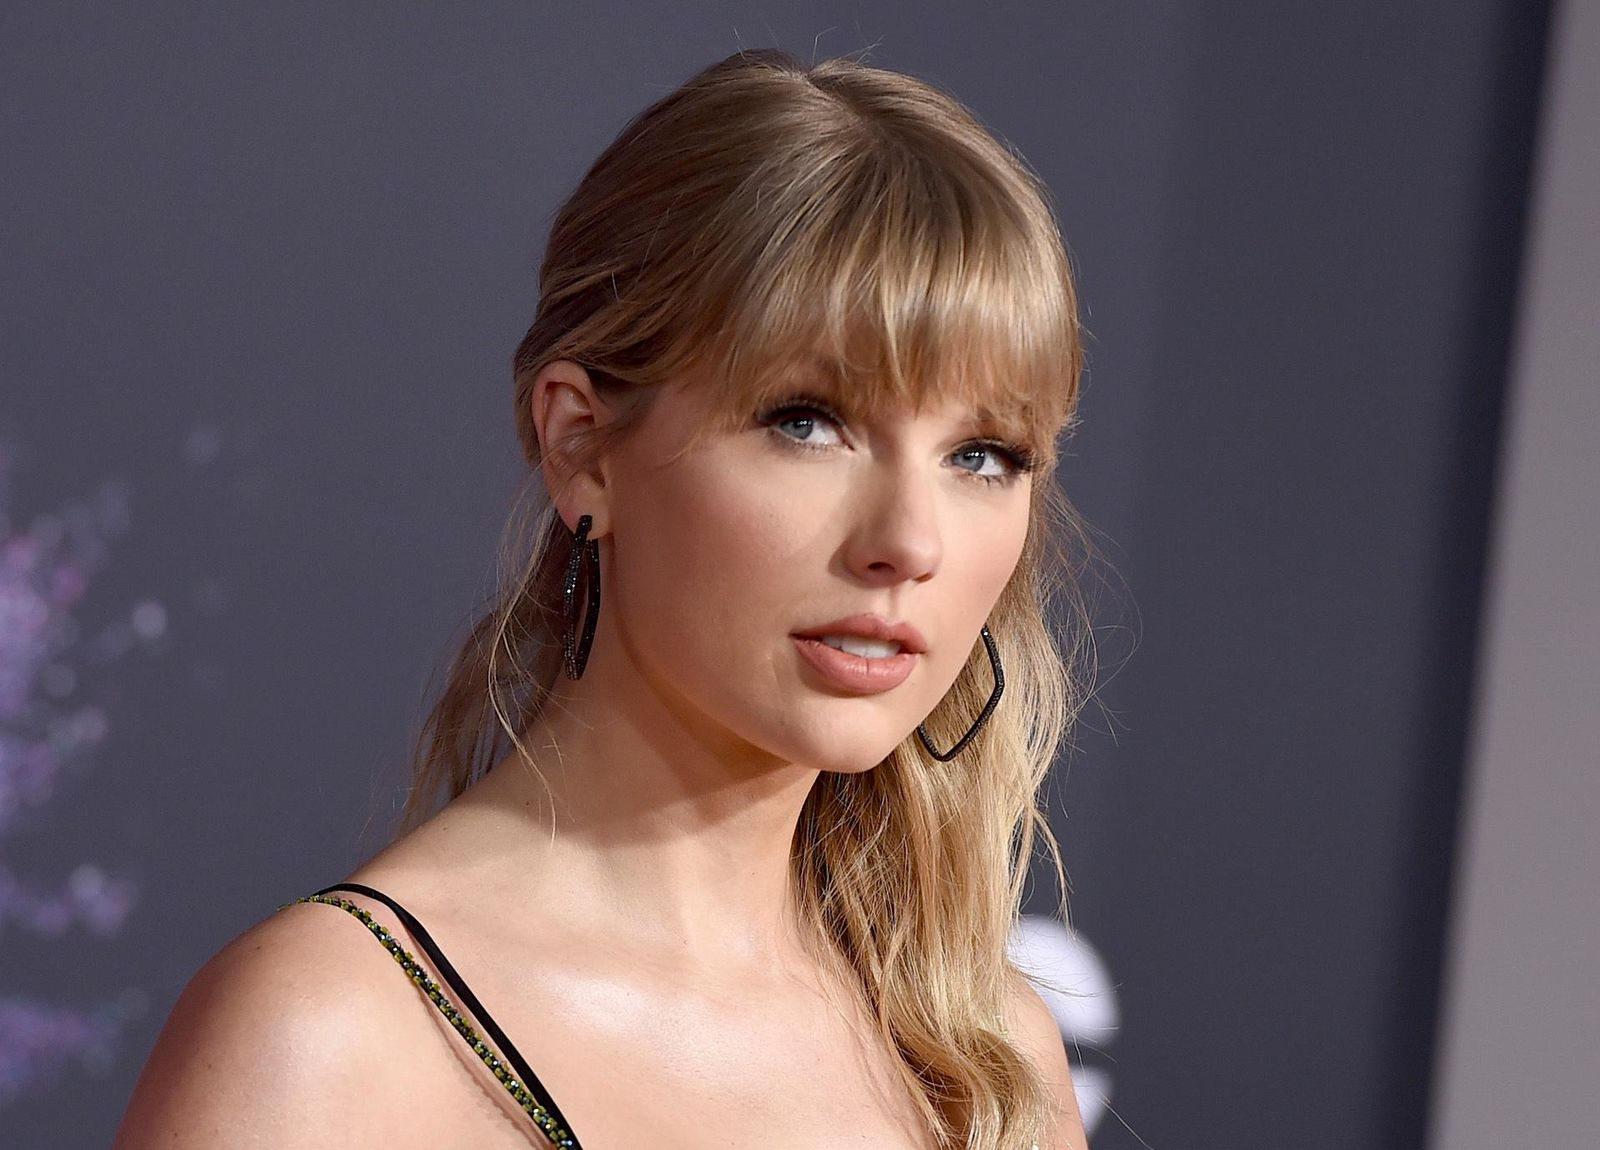 FILE - This Nov. 24, 2019 file photo shows Taylor Swift at the American Music Awards in Los Angeles. A documentary on Swift will kickoff the next Sundance Film Festival. (Photo by Jordan Strauss/Invision/AP, File)